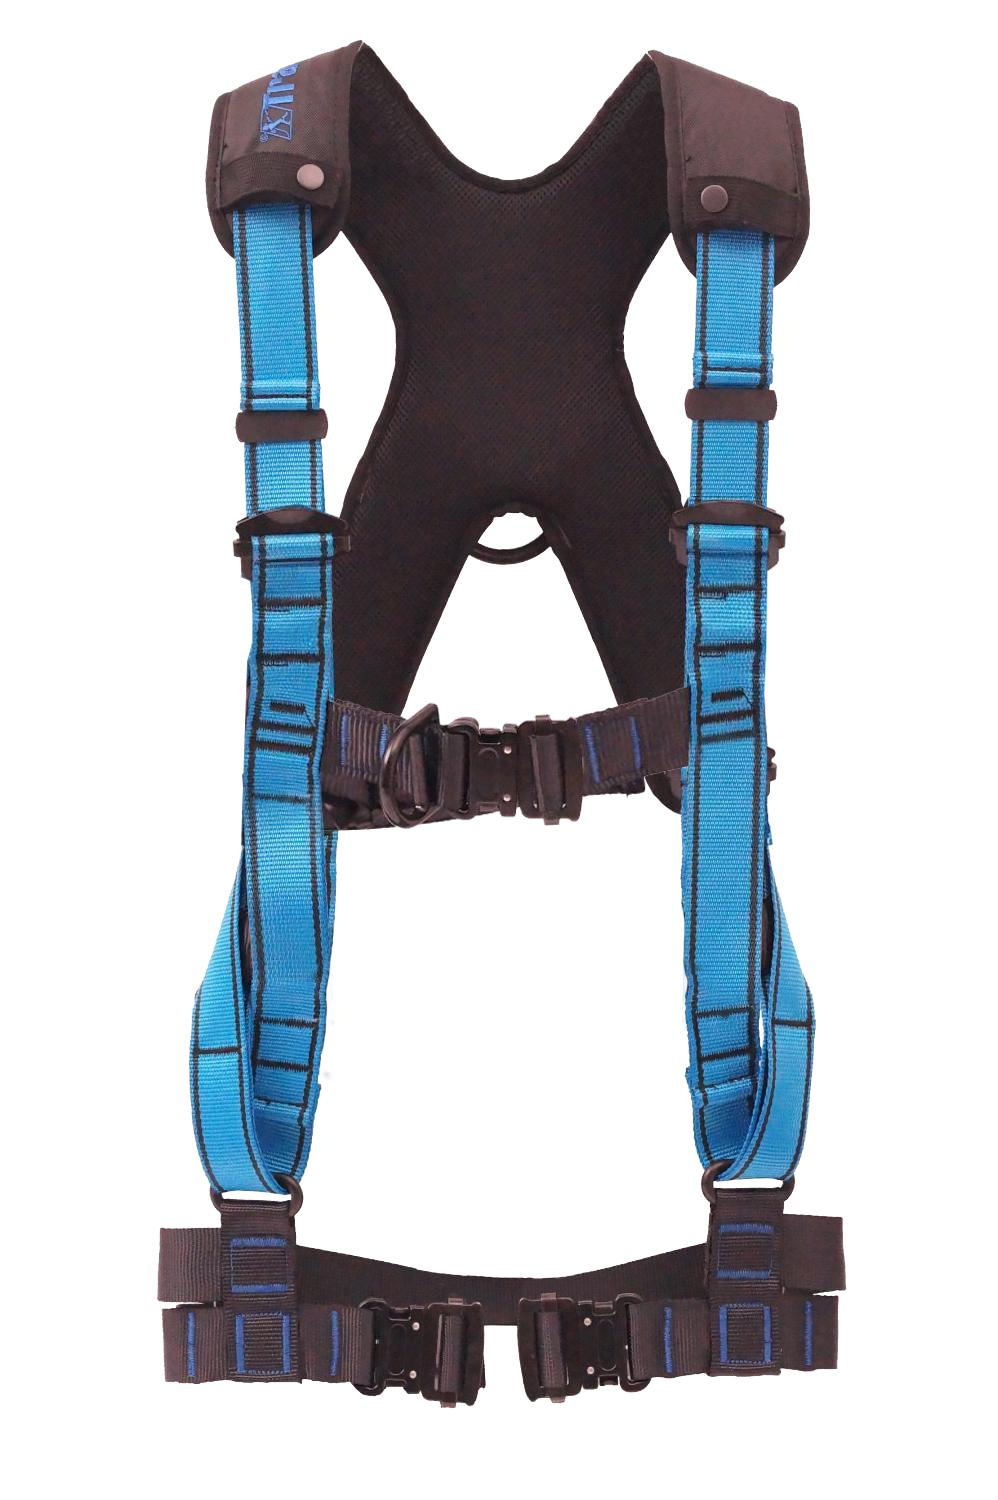 Fall Arrest Harness HT55A XP